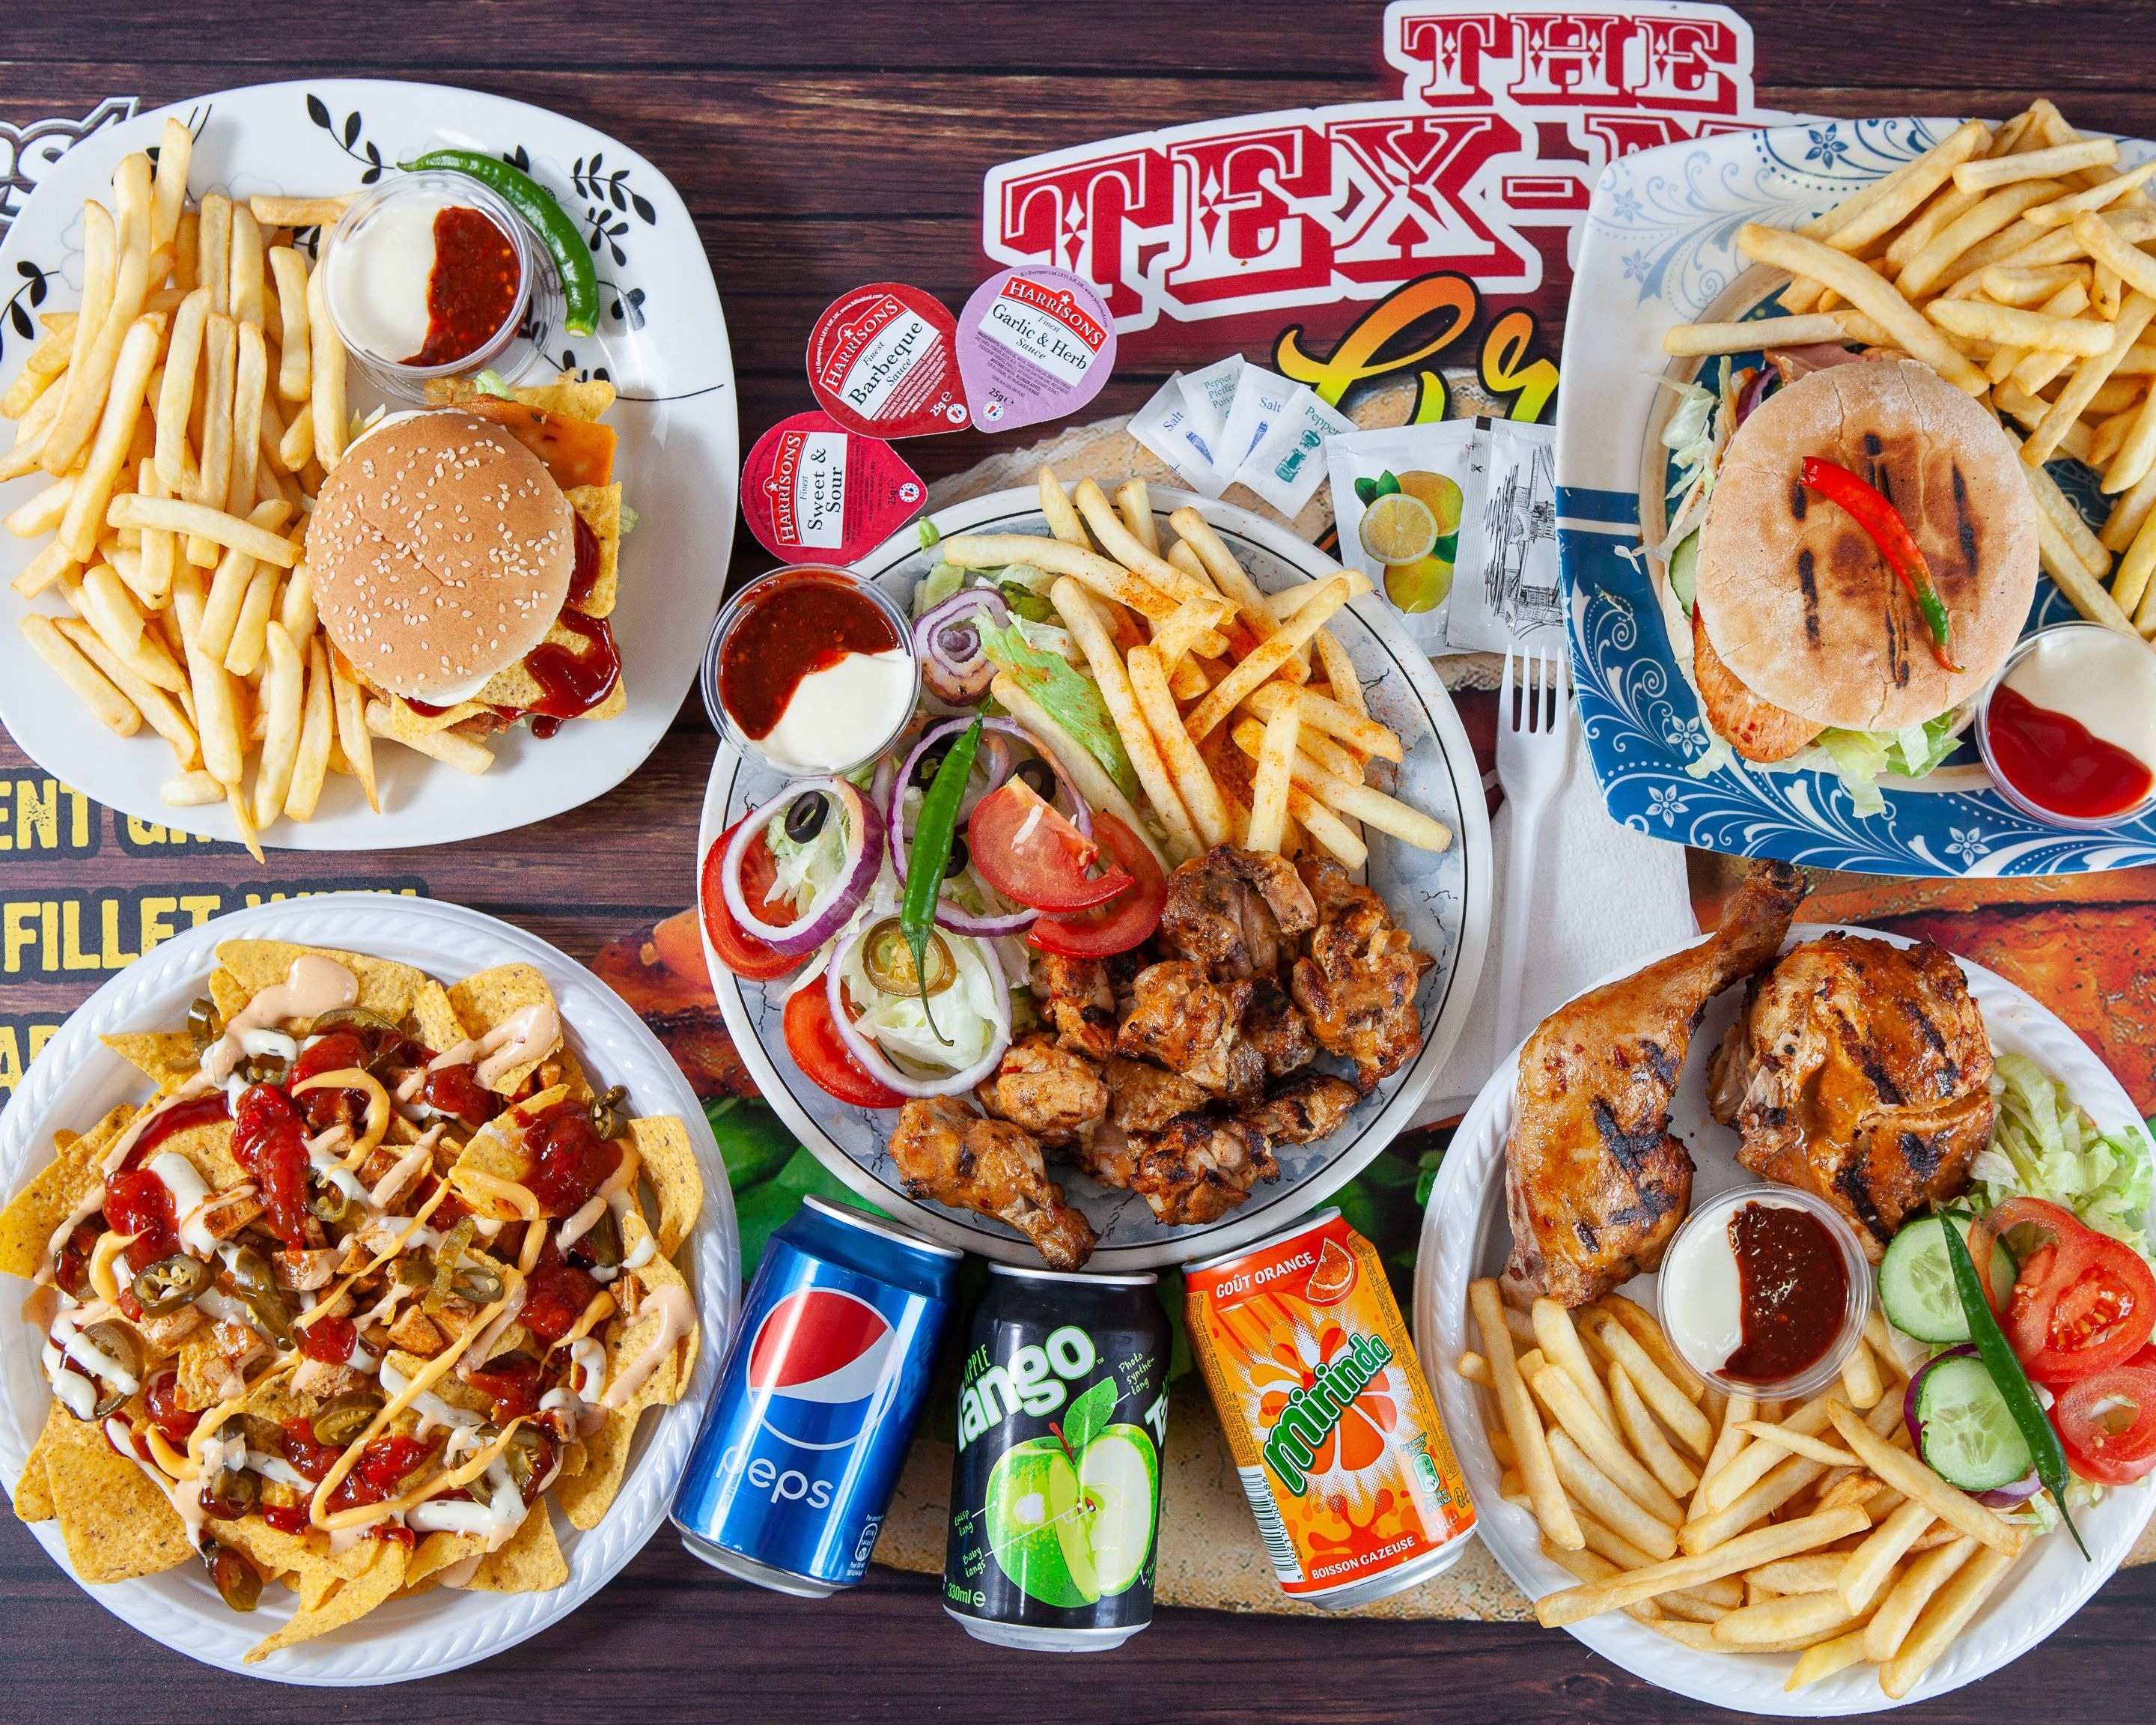 Chesters Chicken Ilford Delivery Ilford Uber Eats